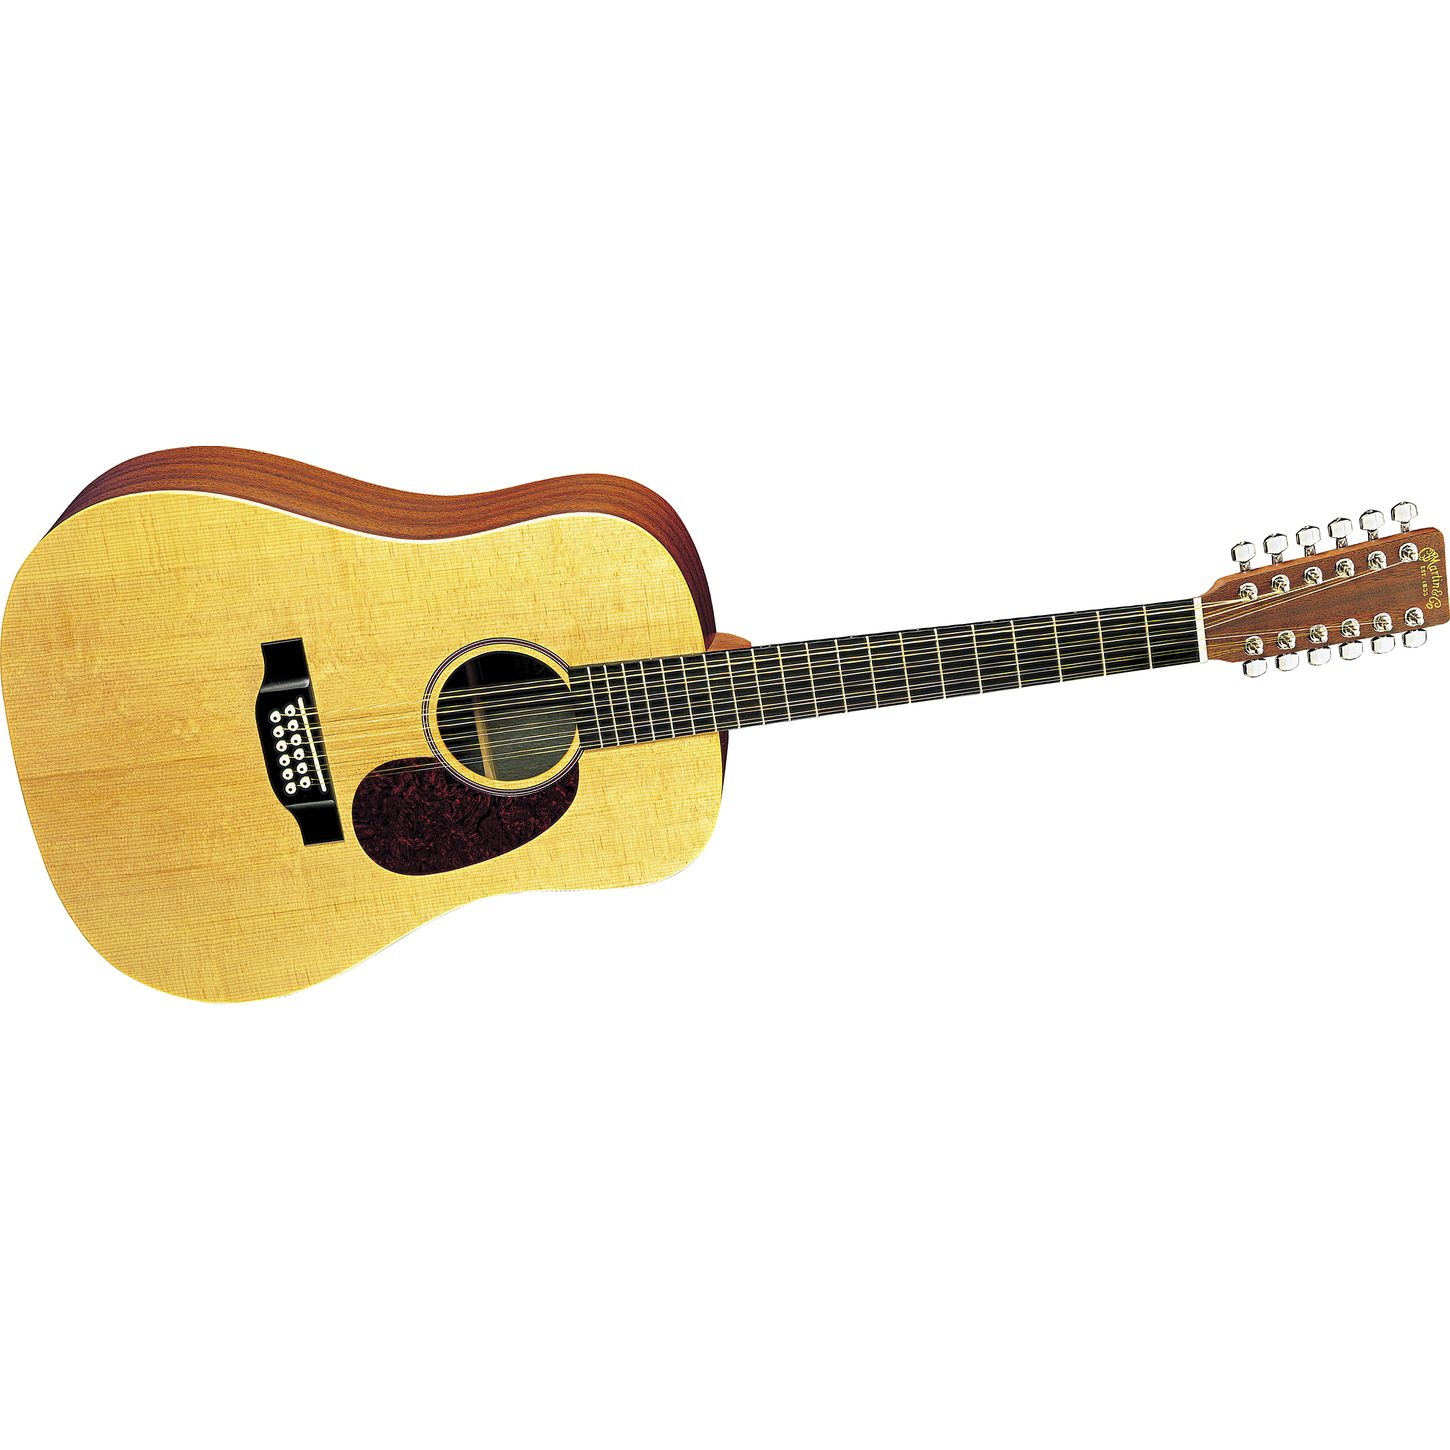 martin d12x1 12 string solid top acoustic guitar musician 39 s friend. Black Bedroom Furniture Sets. Home Design Ideas